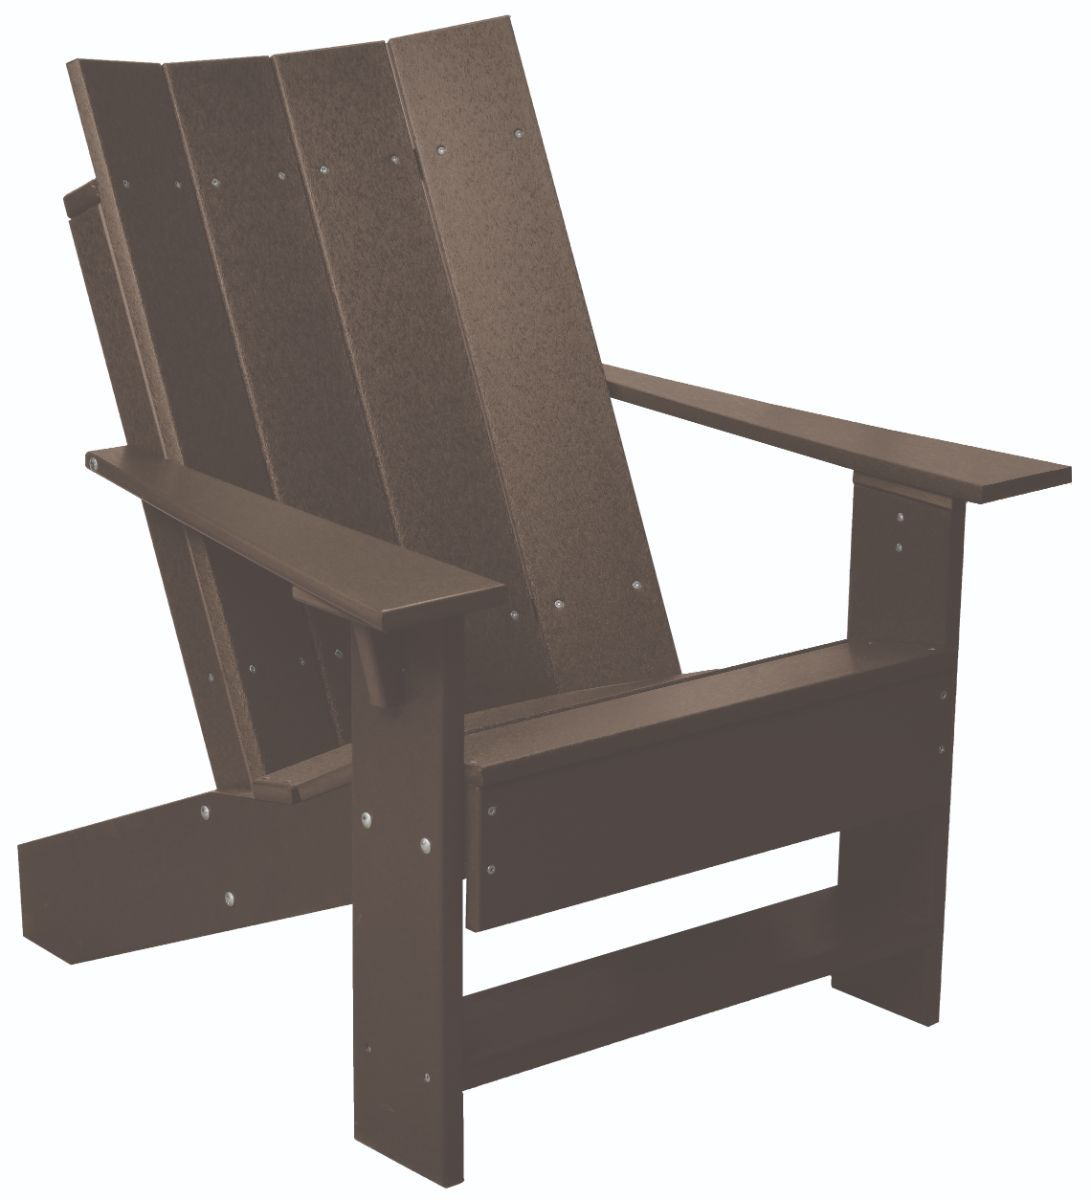 Tudor Brown Mindelo Adirondack Chair